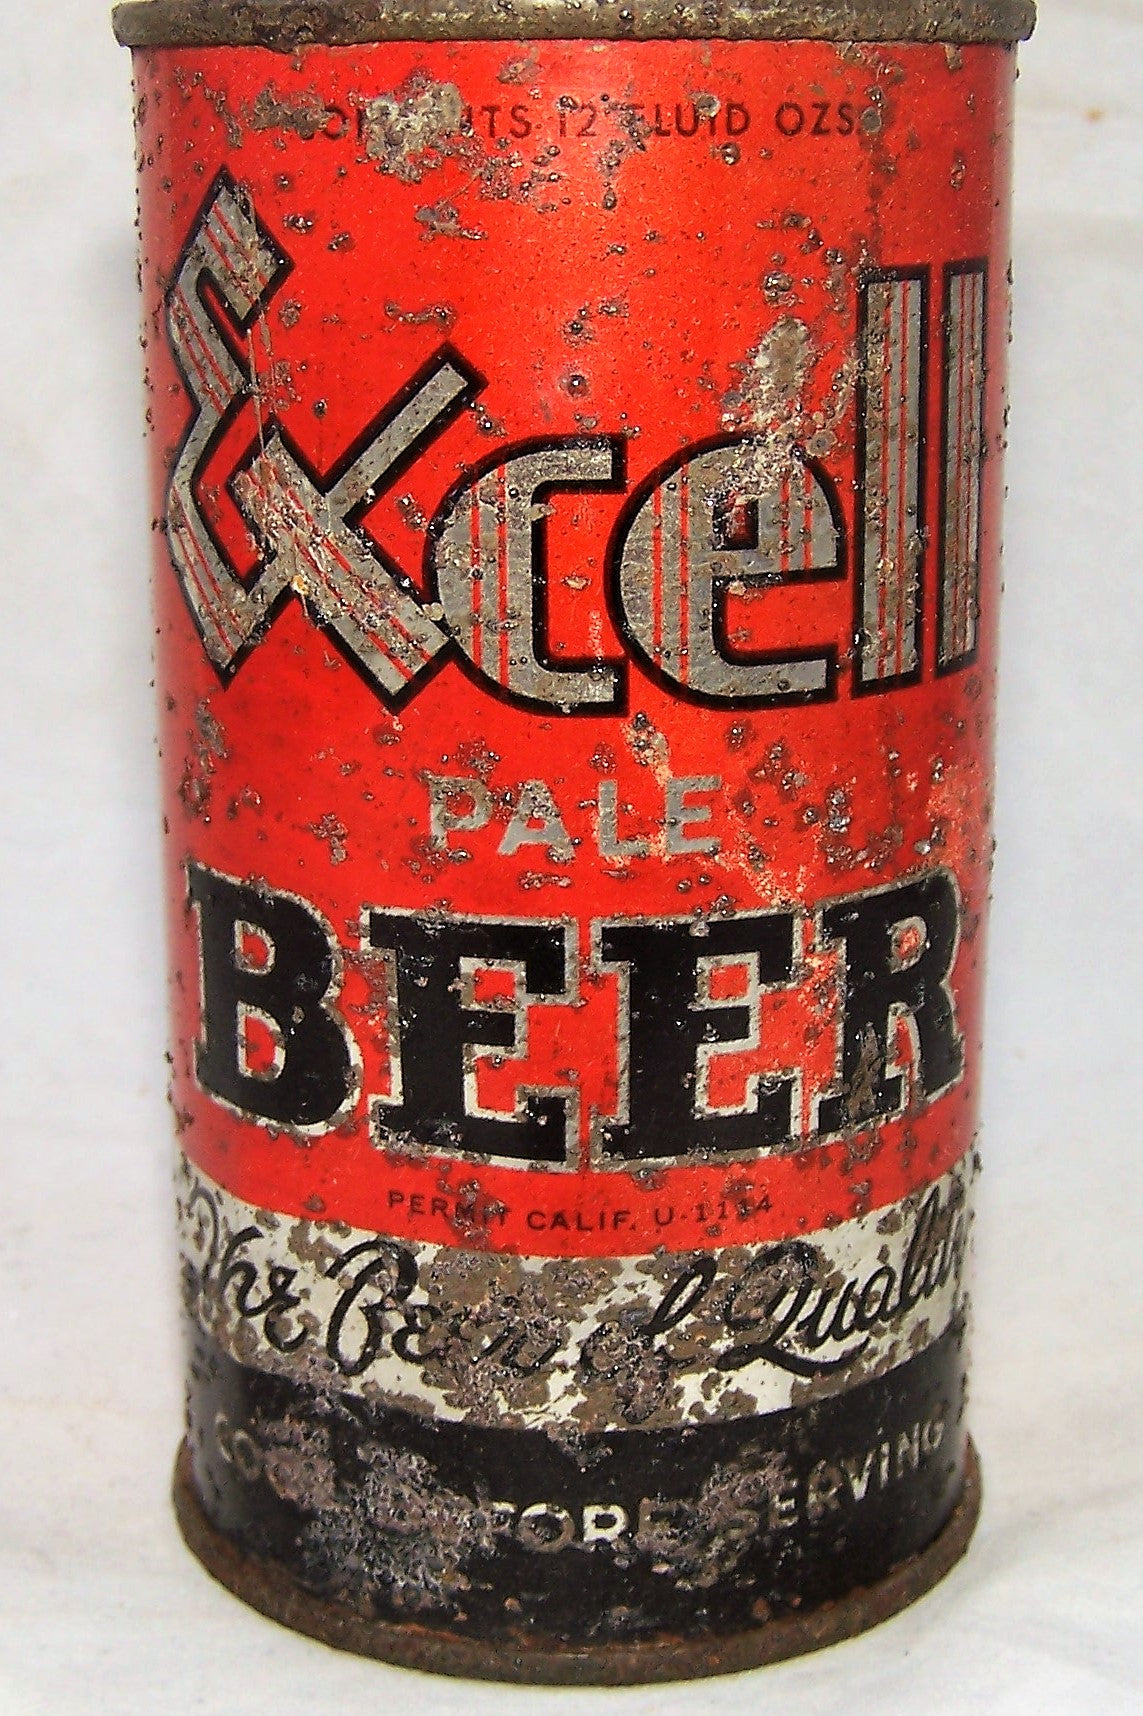 Excell Pale Beer O.I, Dumper can, solid.